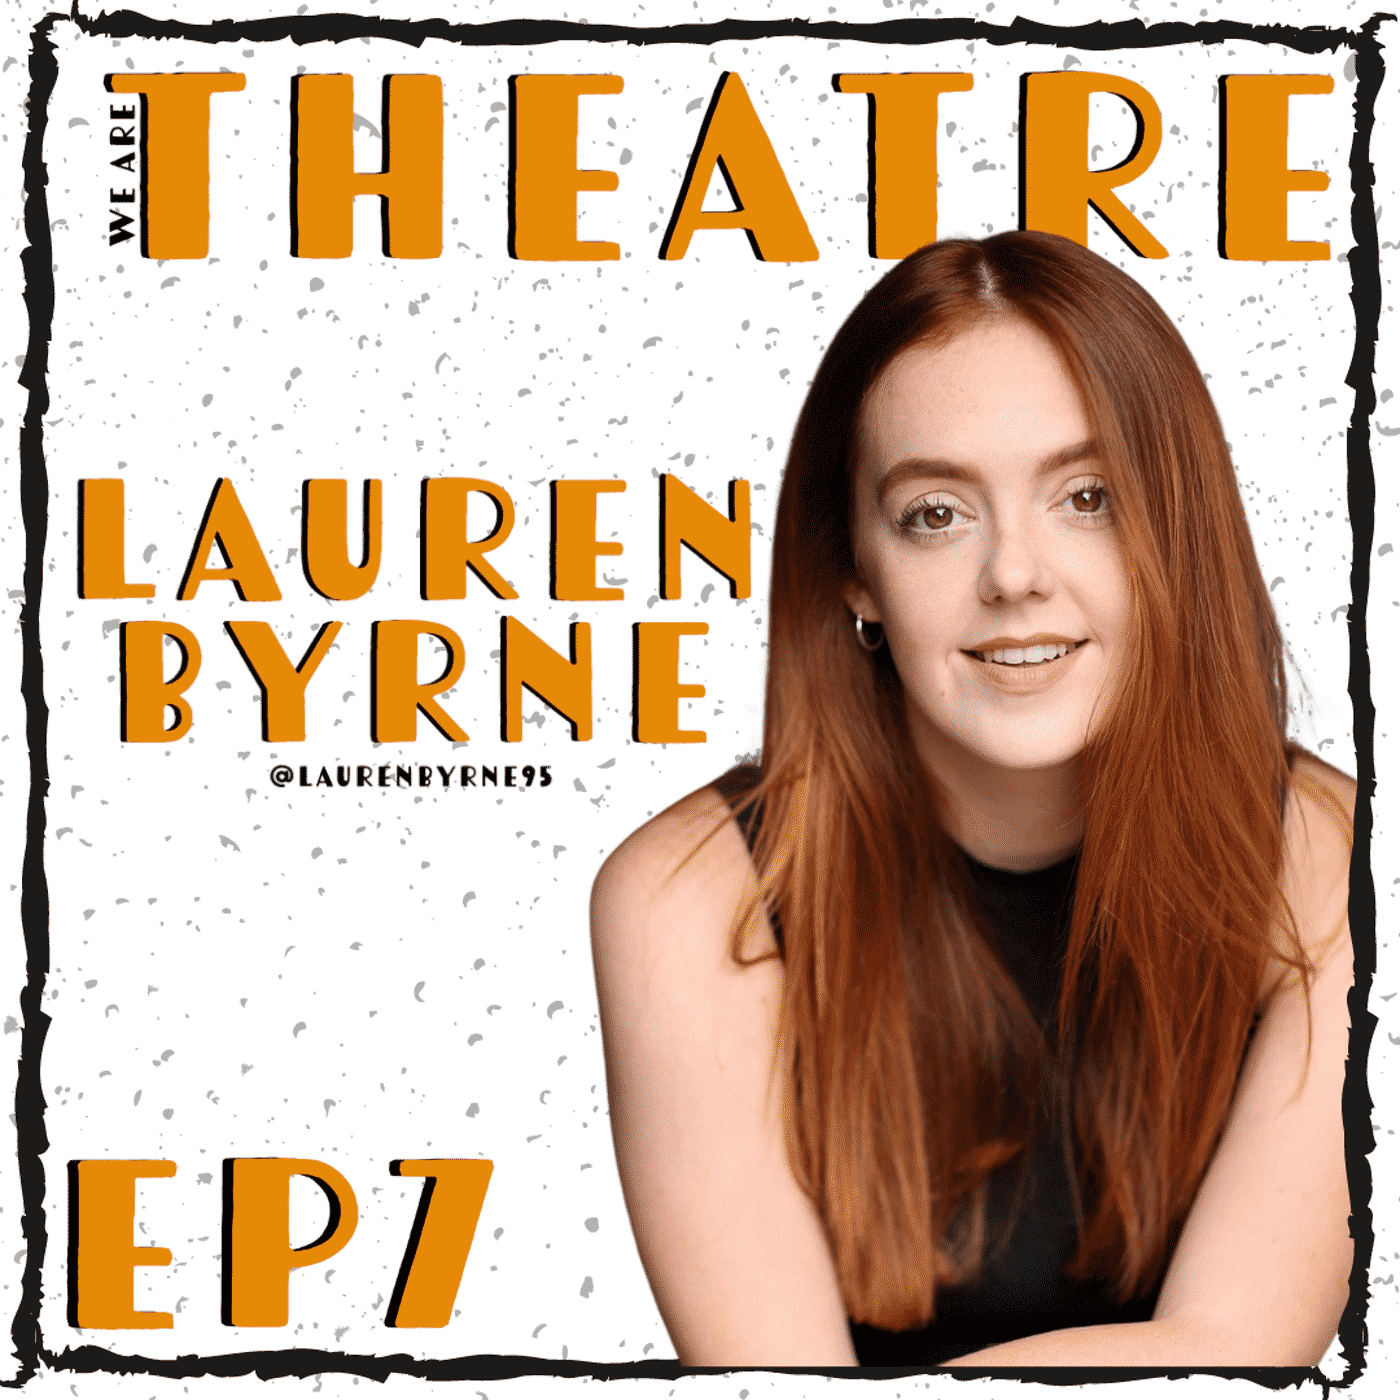 Wow: A Catch Up with Lauren Byrne